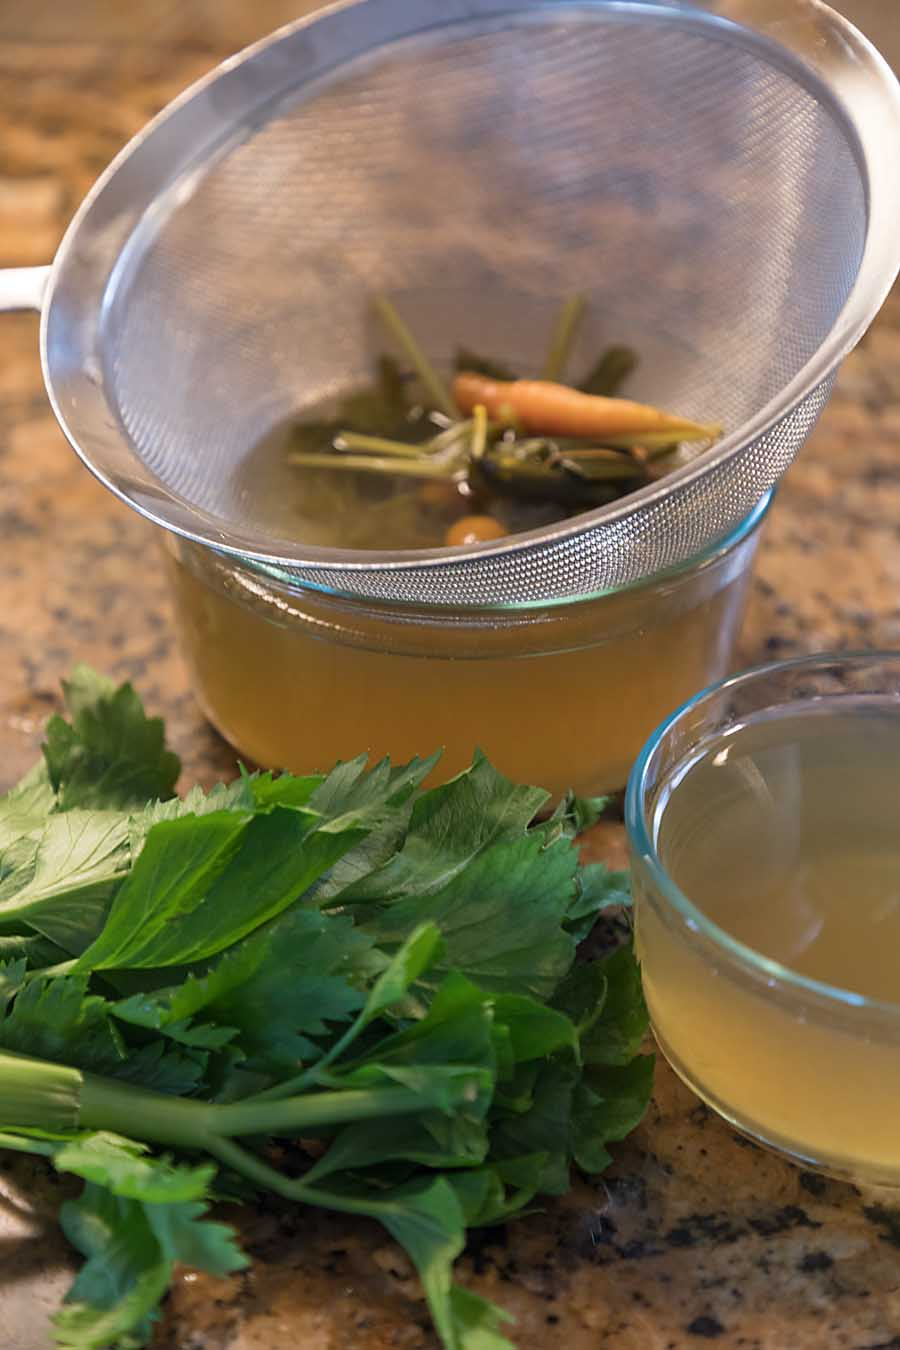 Homemade vegetable broth is easy, quick--and better than many commercial varieties.  You can even make it from carrot ends and other scraps!